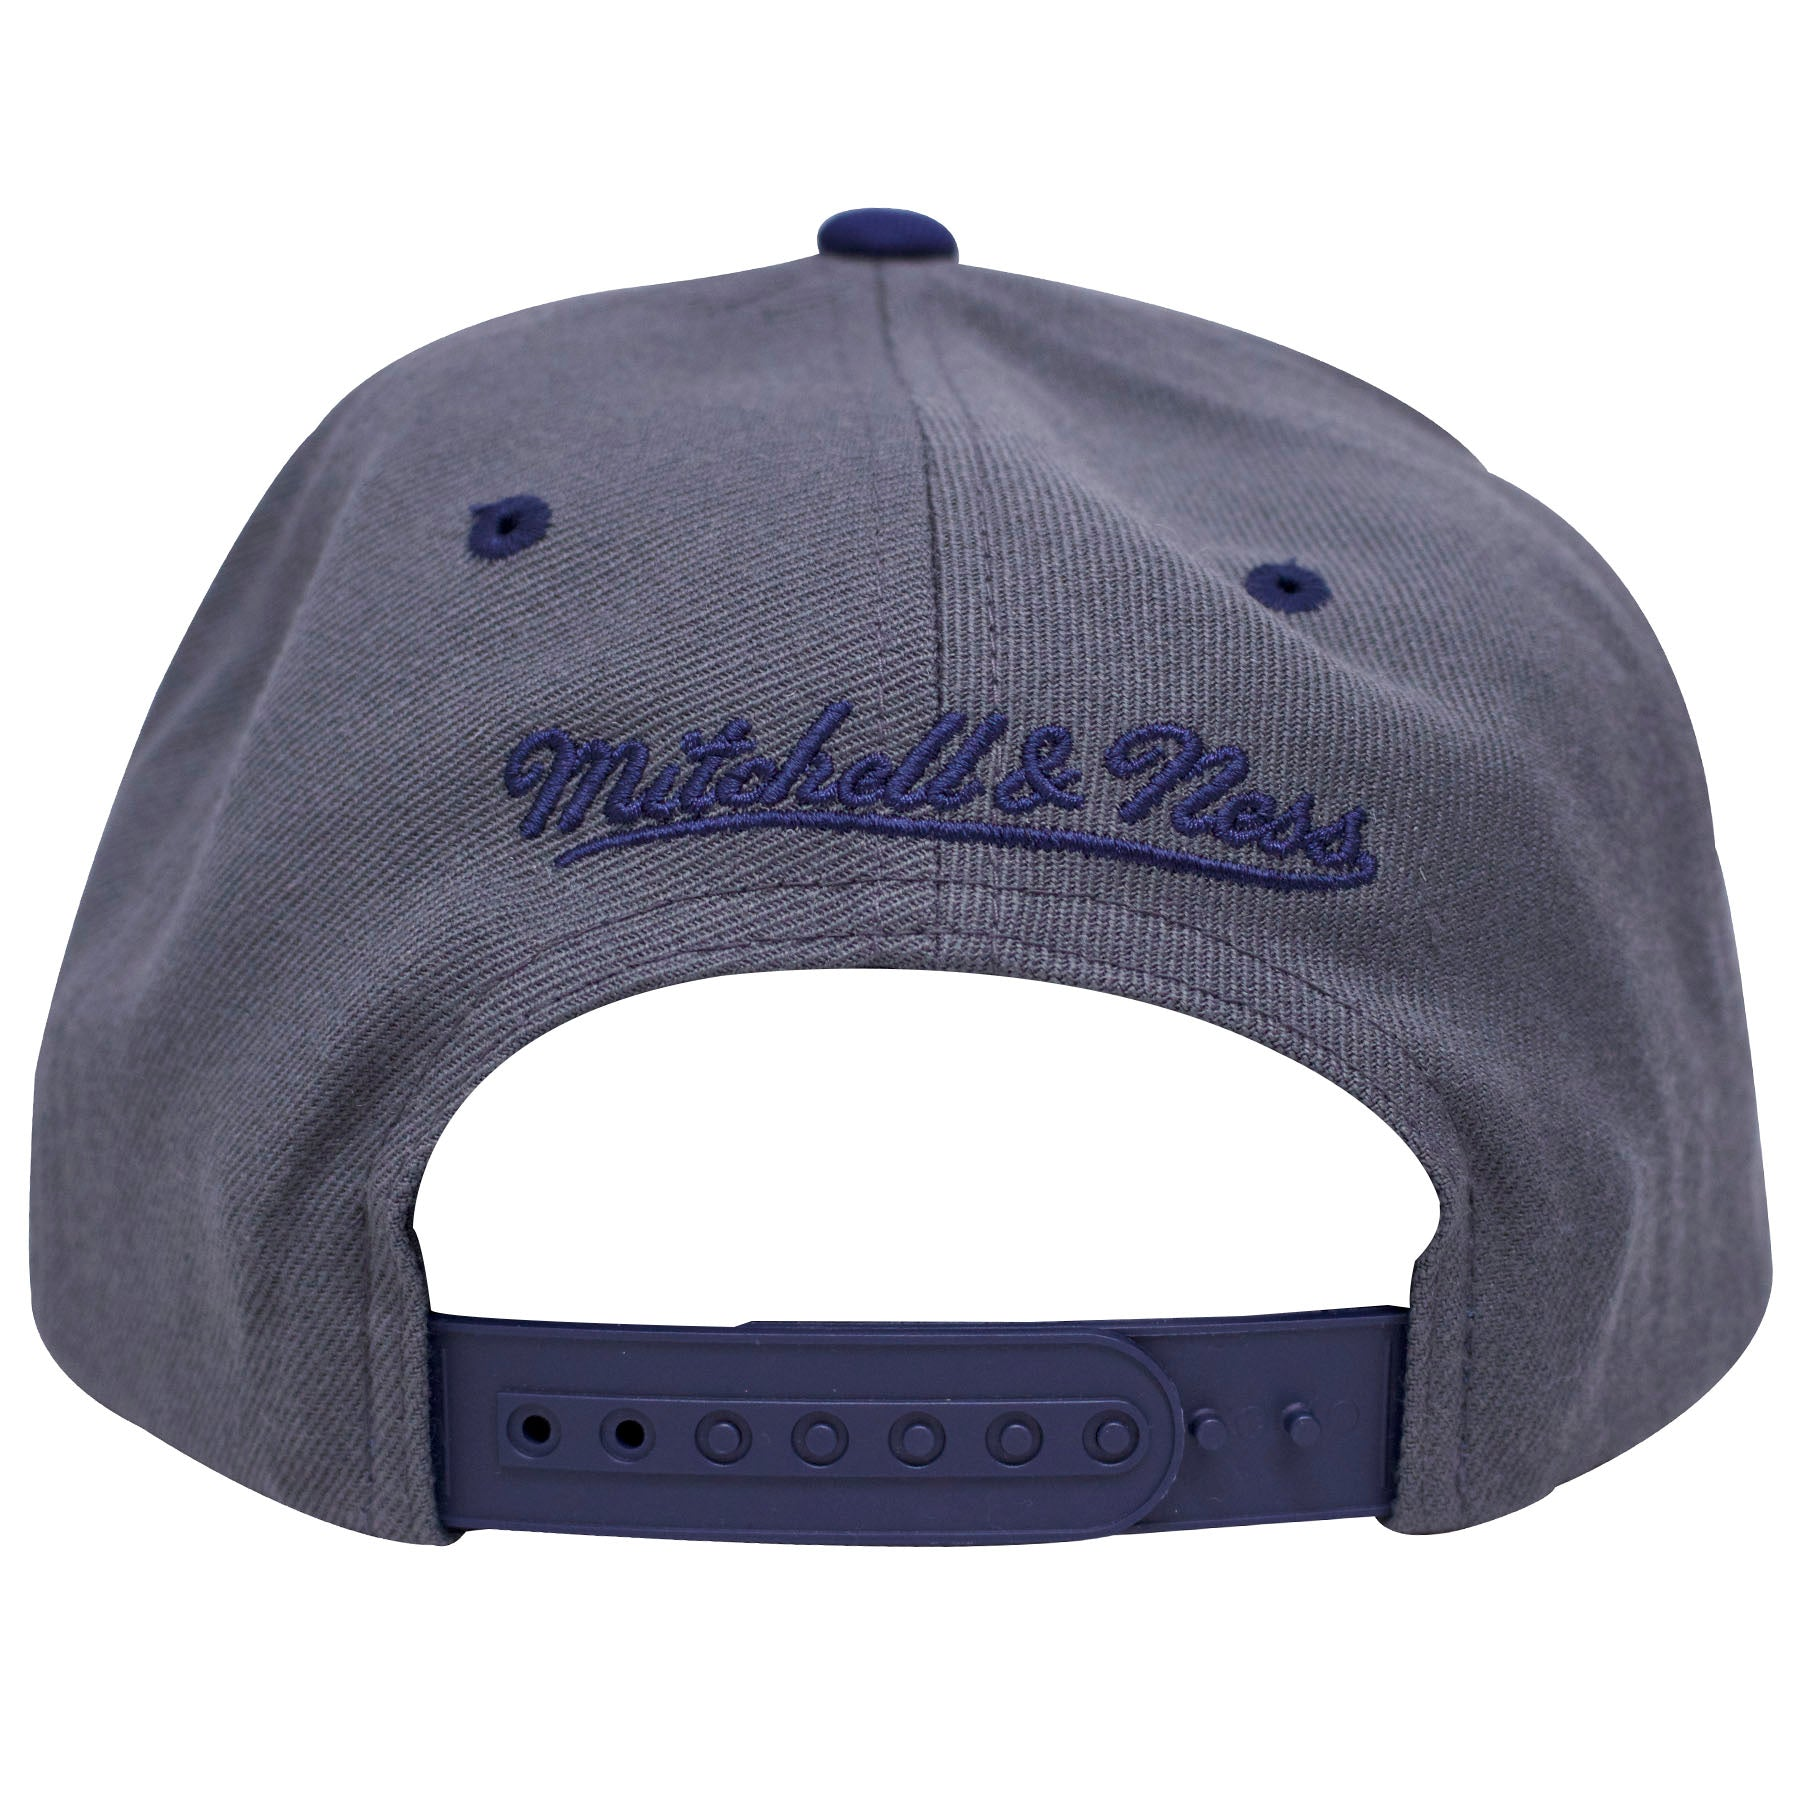 4ba6cf554b3 the Air Jordan 13 flint sneaker matching snapback crown has a gray crown  and a navy · on the back of the chicago bulls gray snapback hat there is a  navy ...